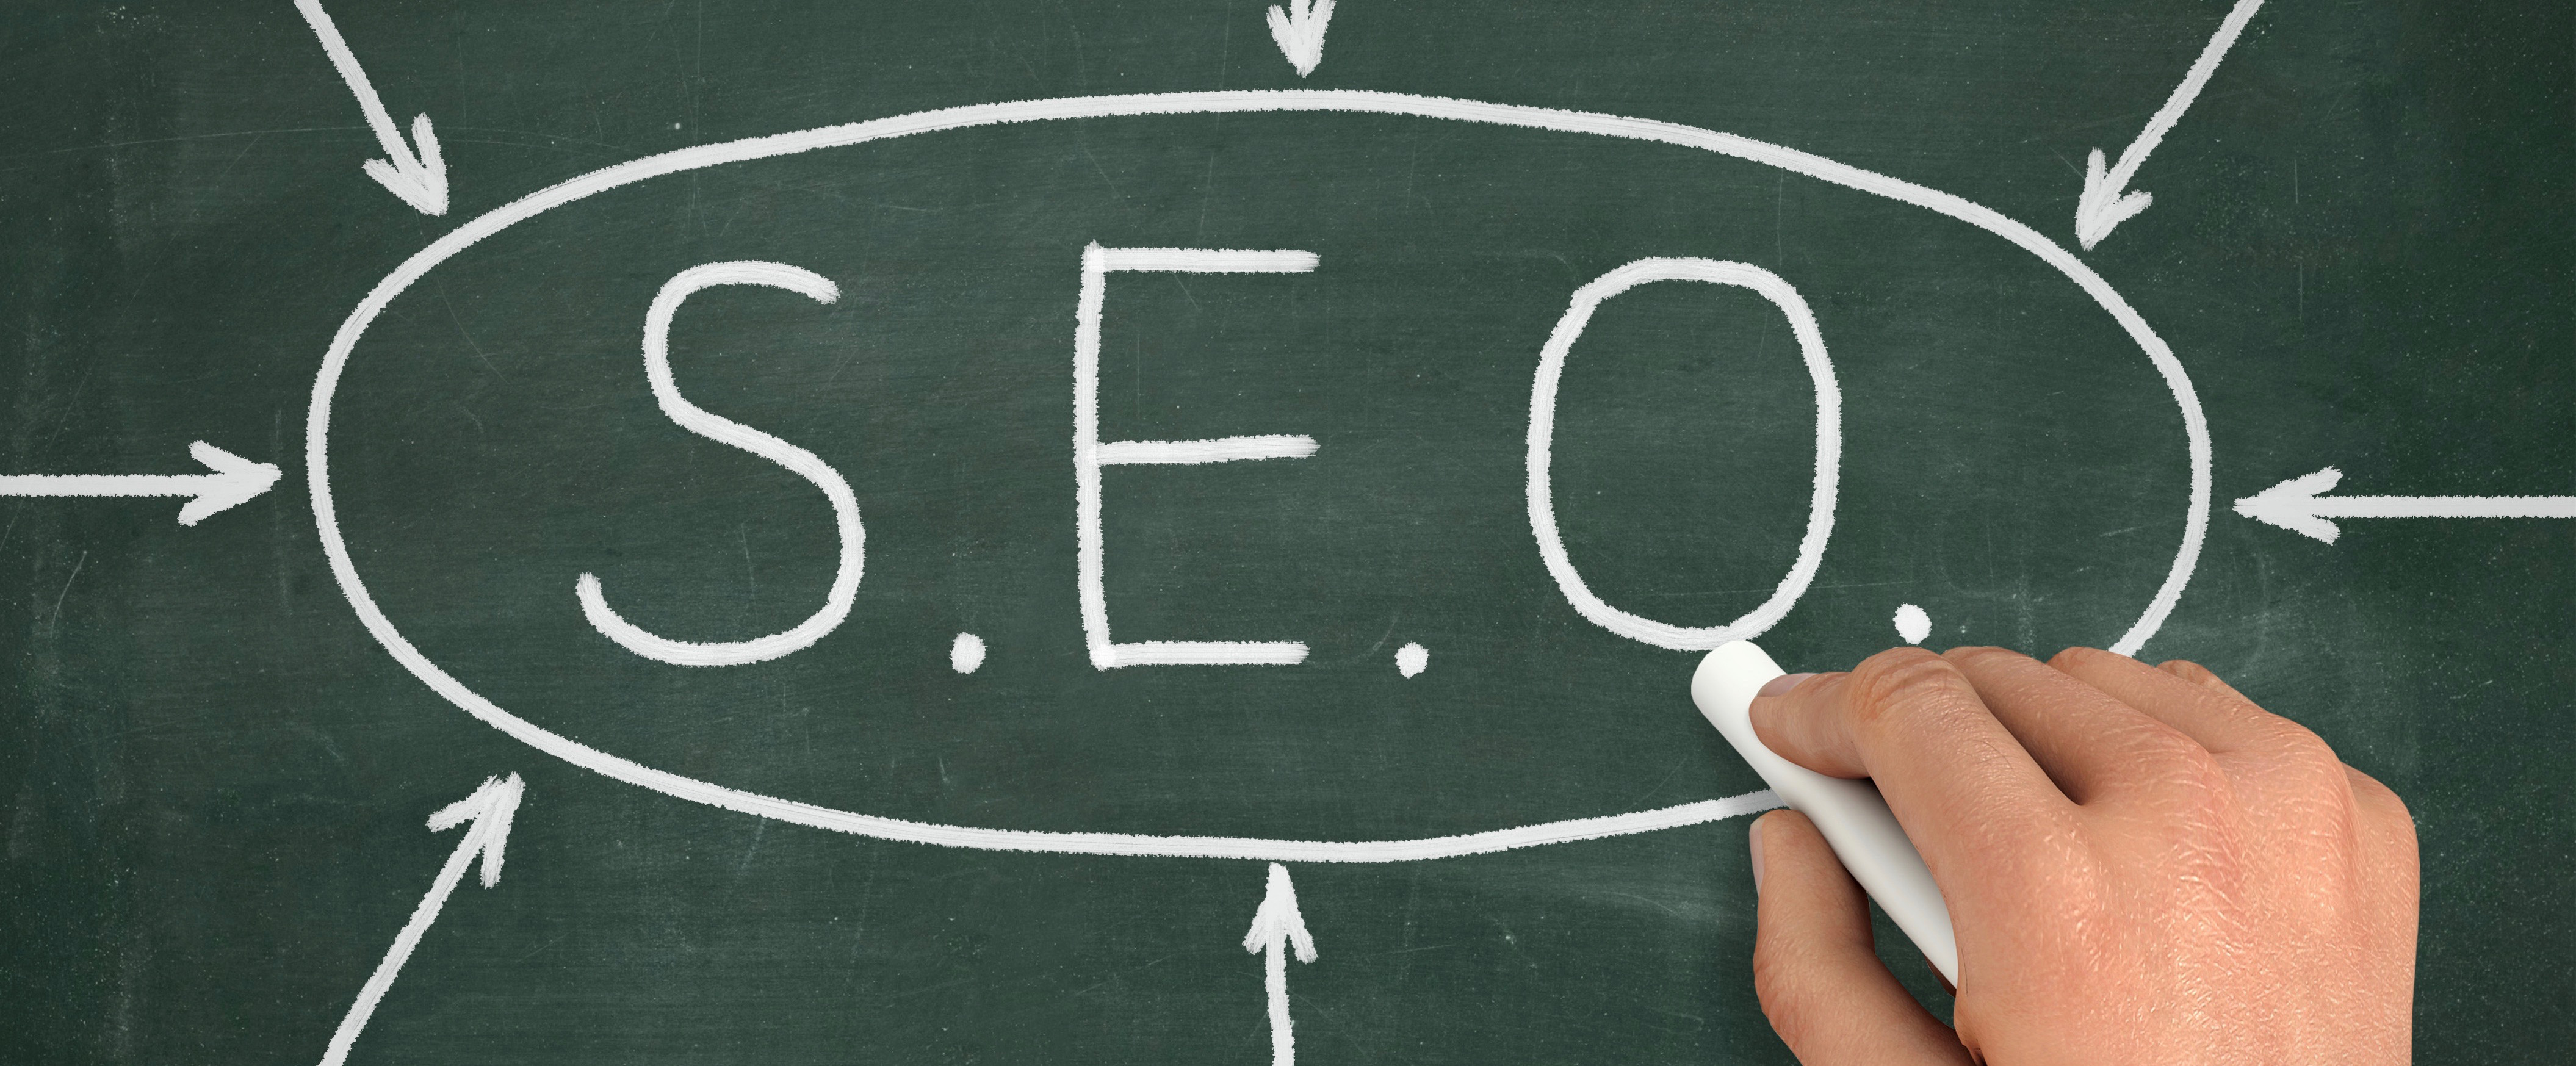 How to Learn SEO: 10 of the Best Resources to Bookmark